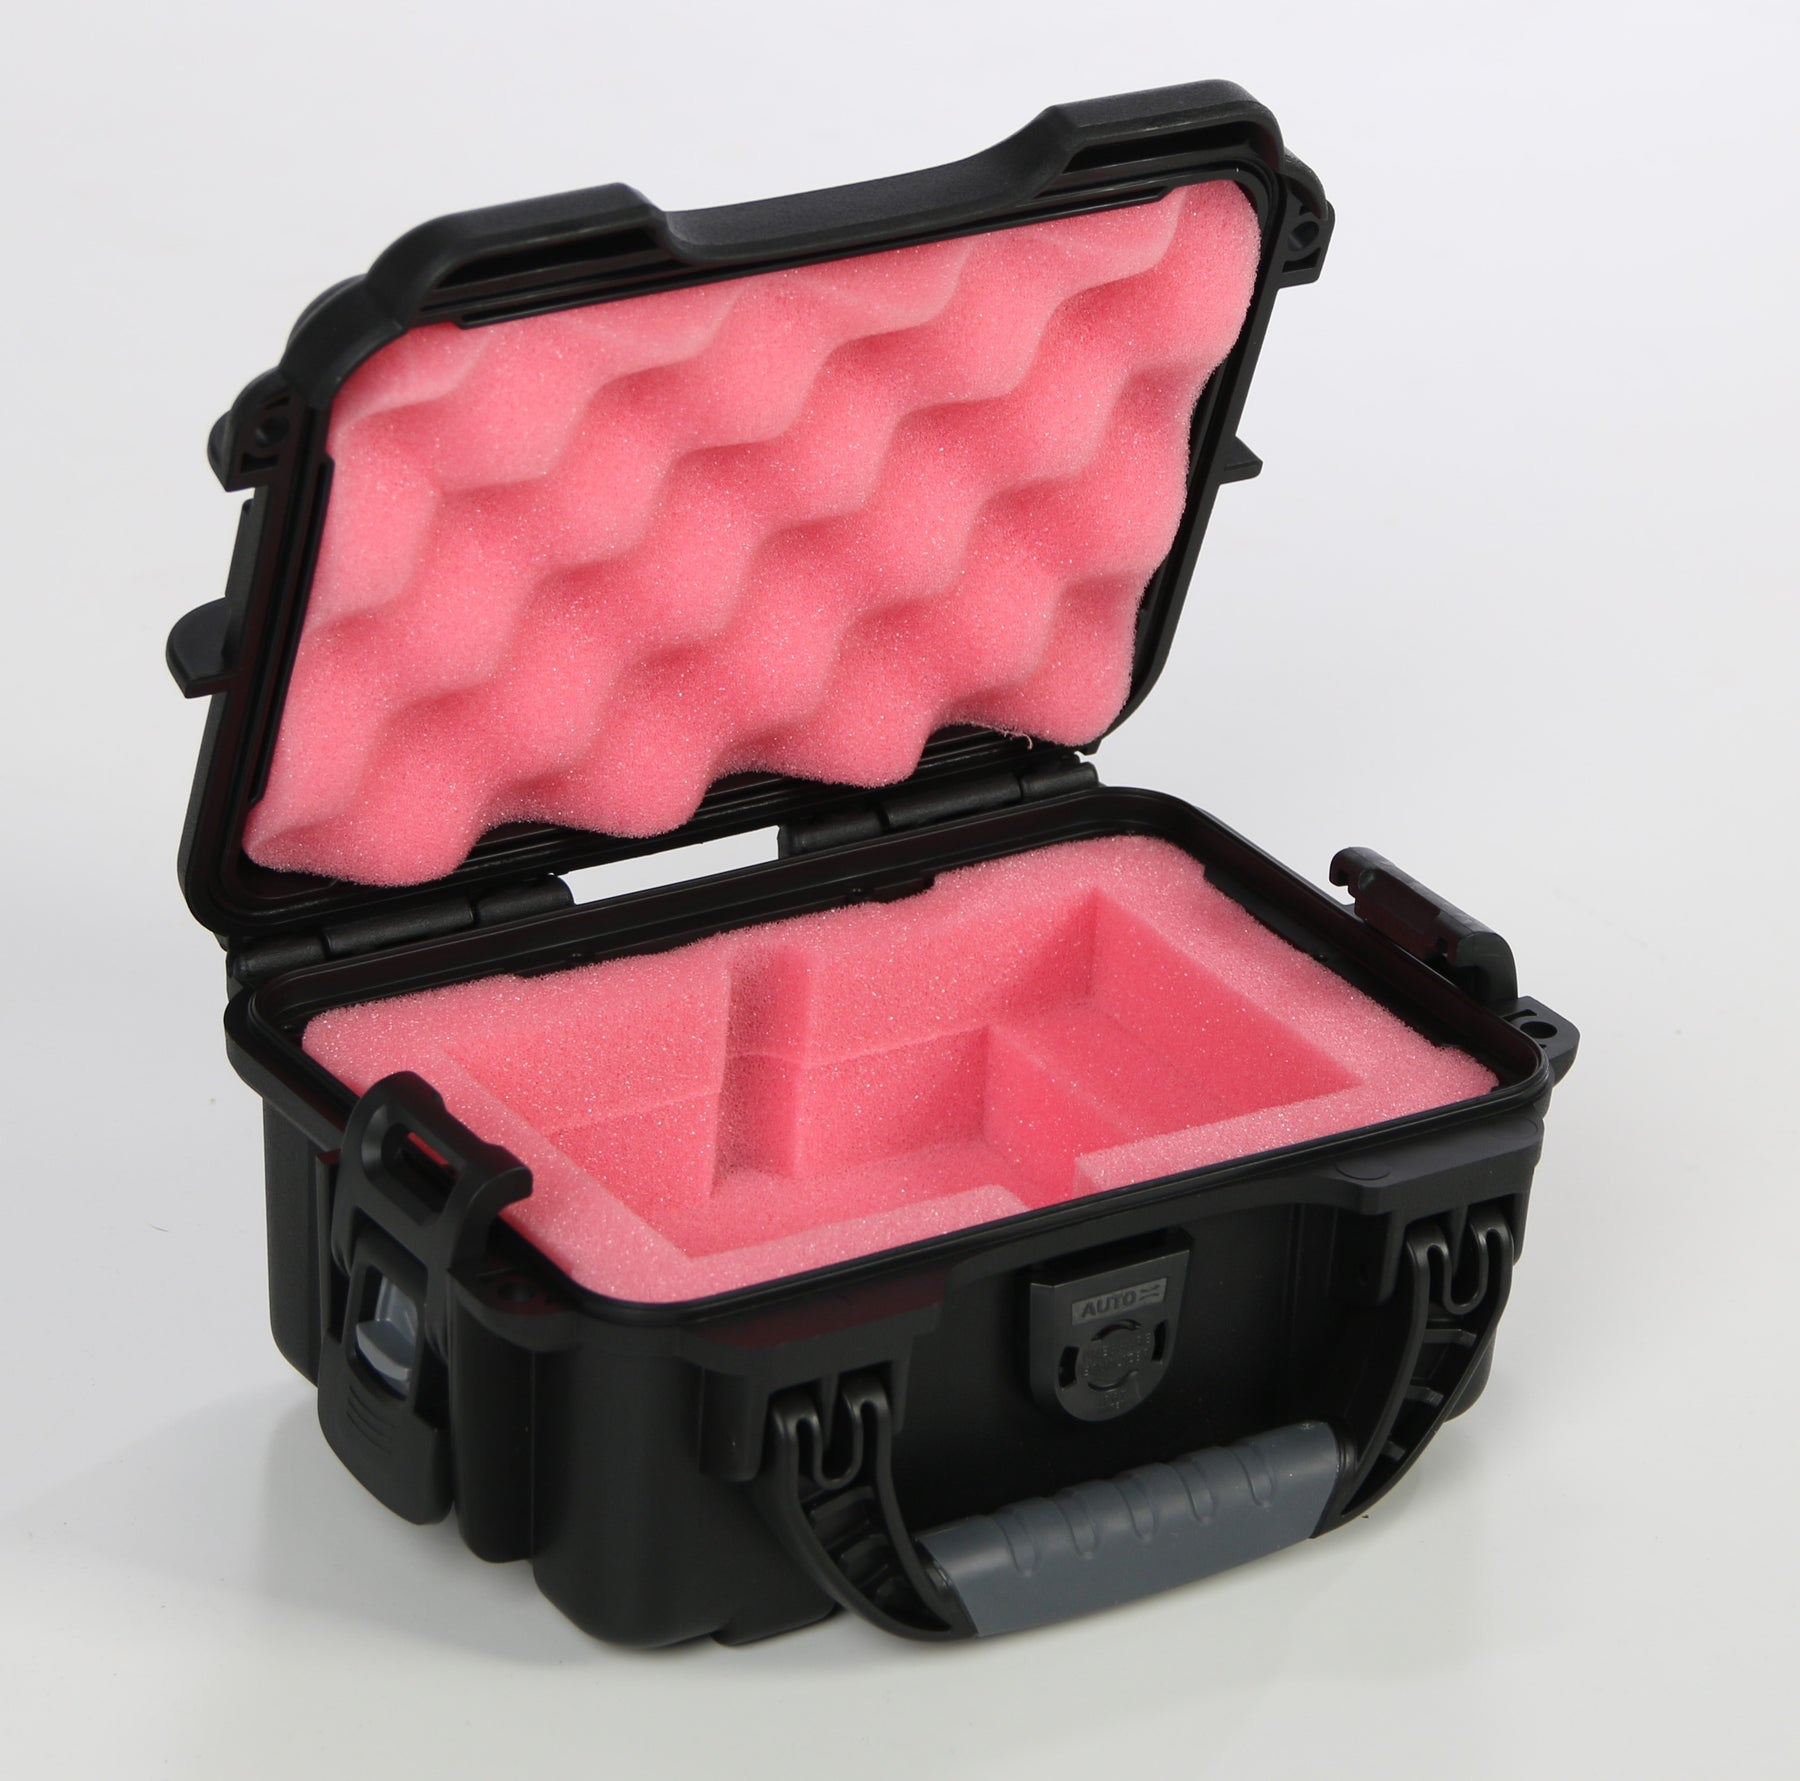 G DRIVE ev/LaCie Rugged Waterproof Case - 1 Capacity